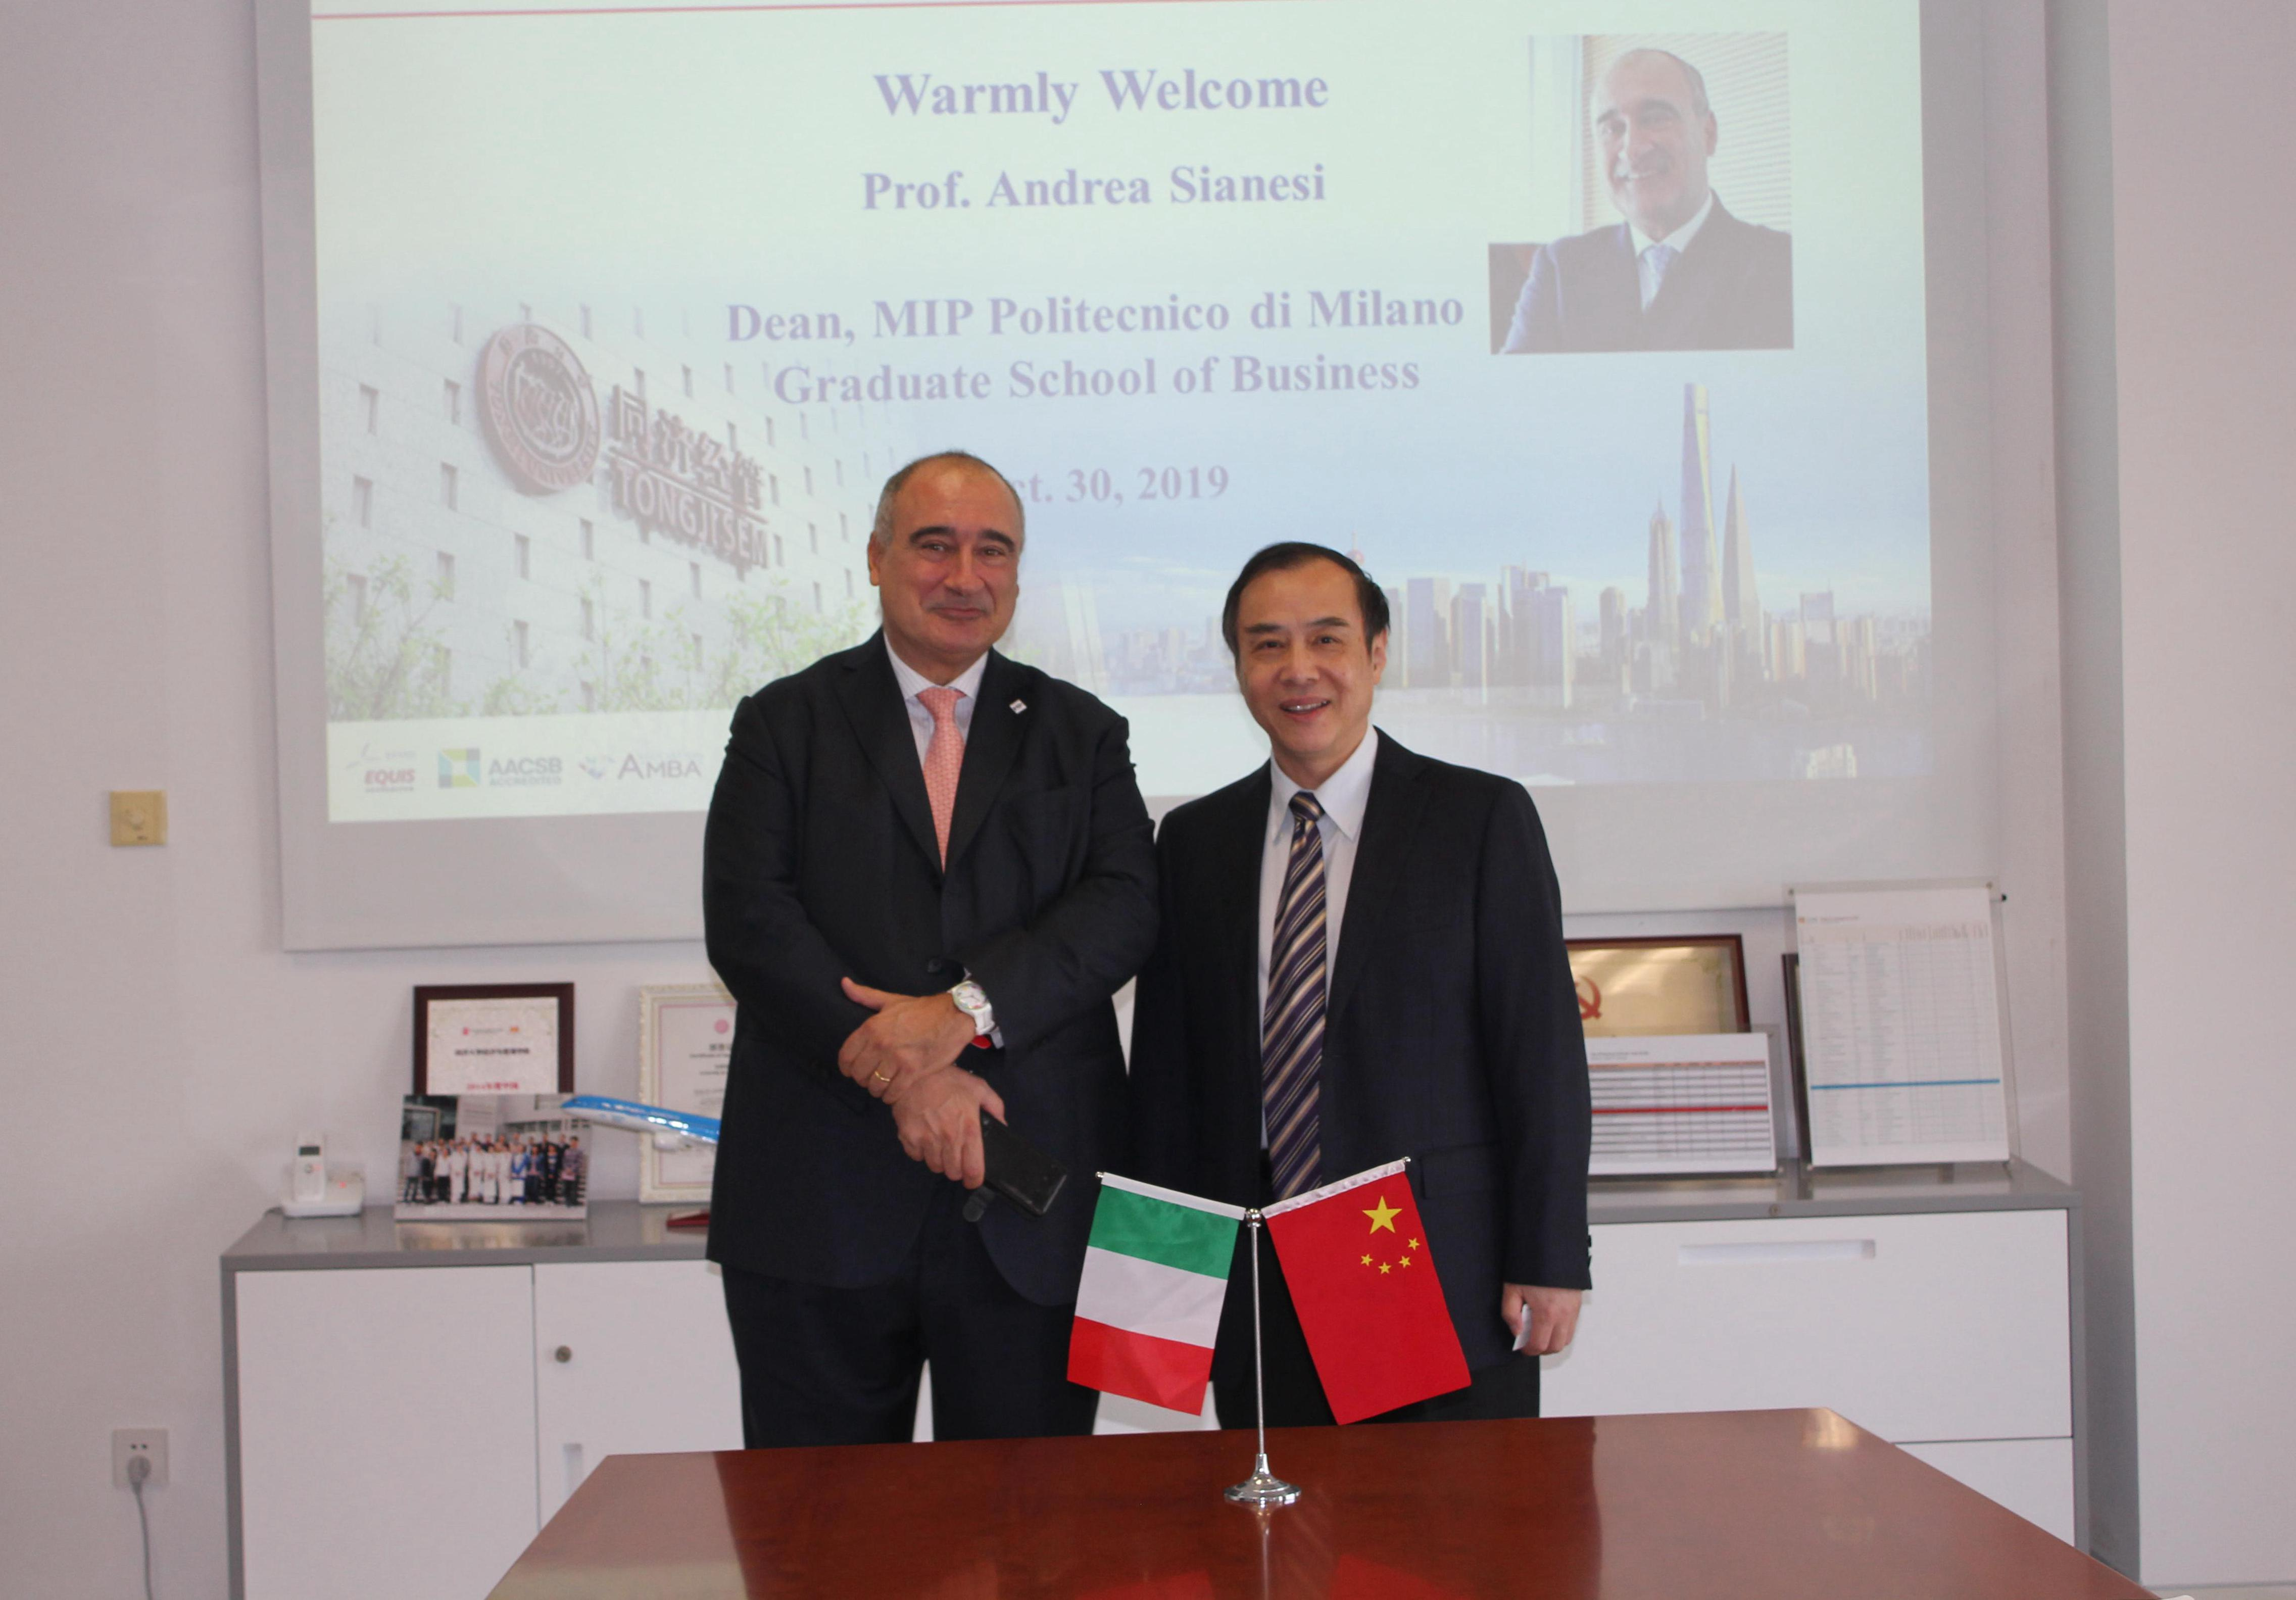 Dean of MIP Politecnico di Milano Graduate School of Business Visits SEM